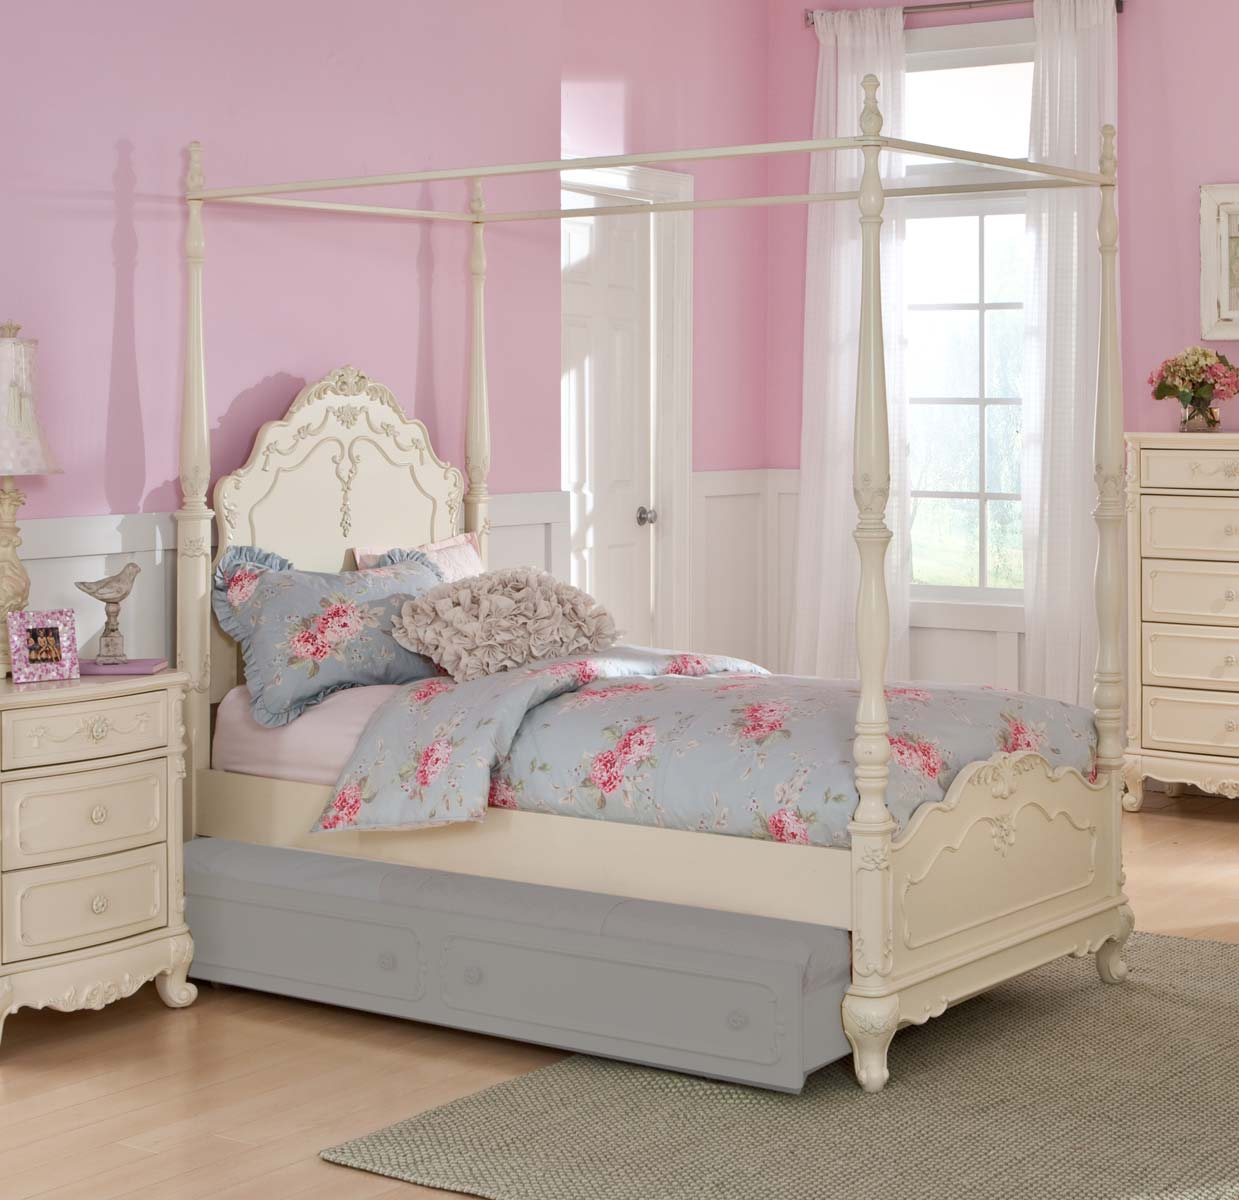 Homelegance cinderella bedroom collection ecru b1386 at for Bedroom set and mattress